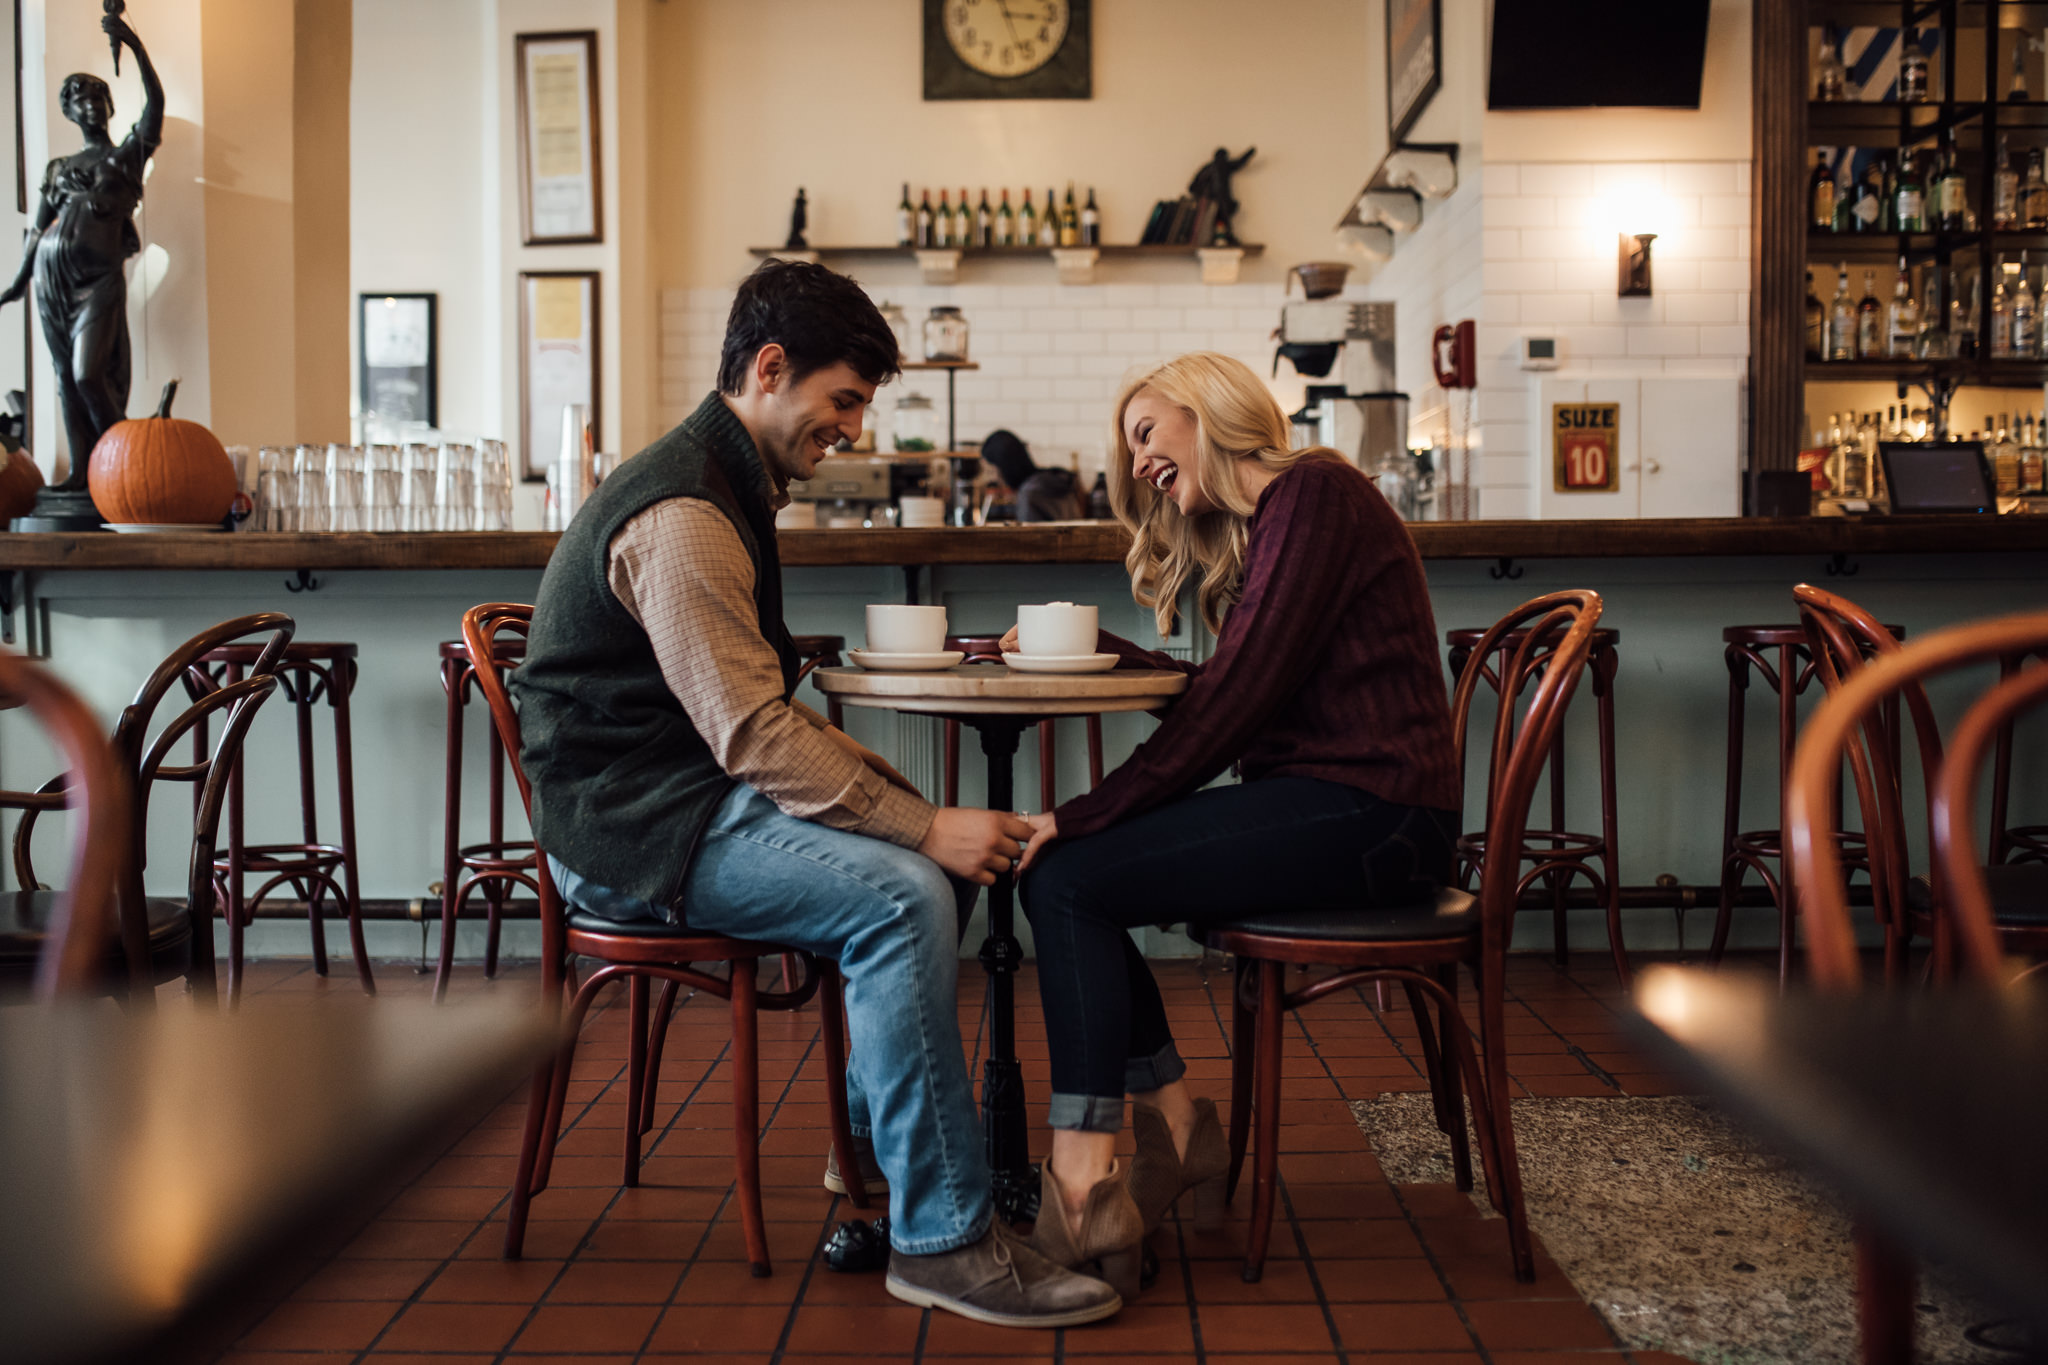 memphis-wedding-photographer-cassie-cook-photography-cafe-keough-engagement-photoshoot-coffee-engagement-5.jpg